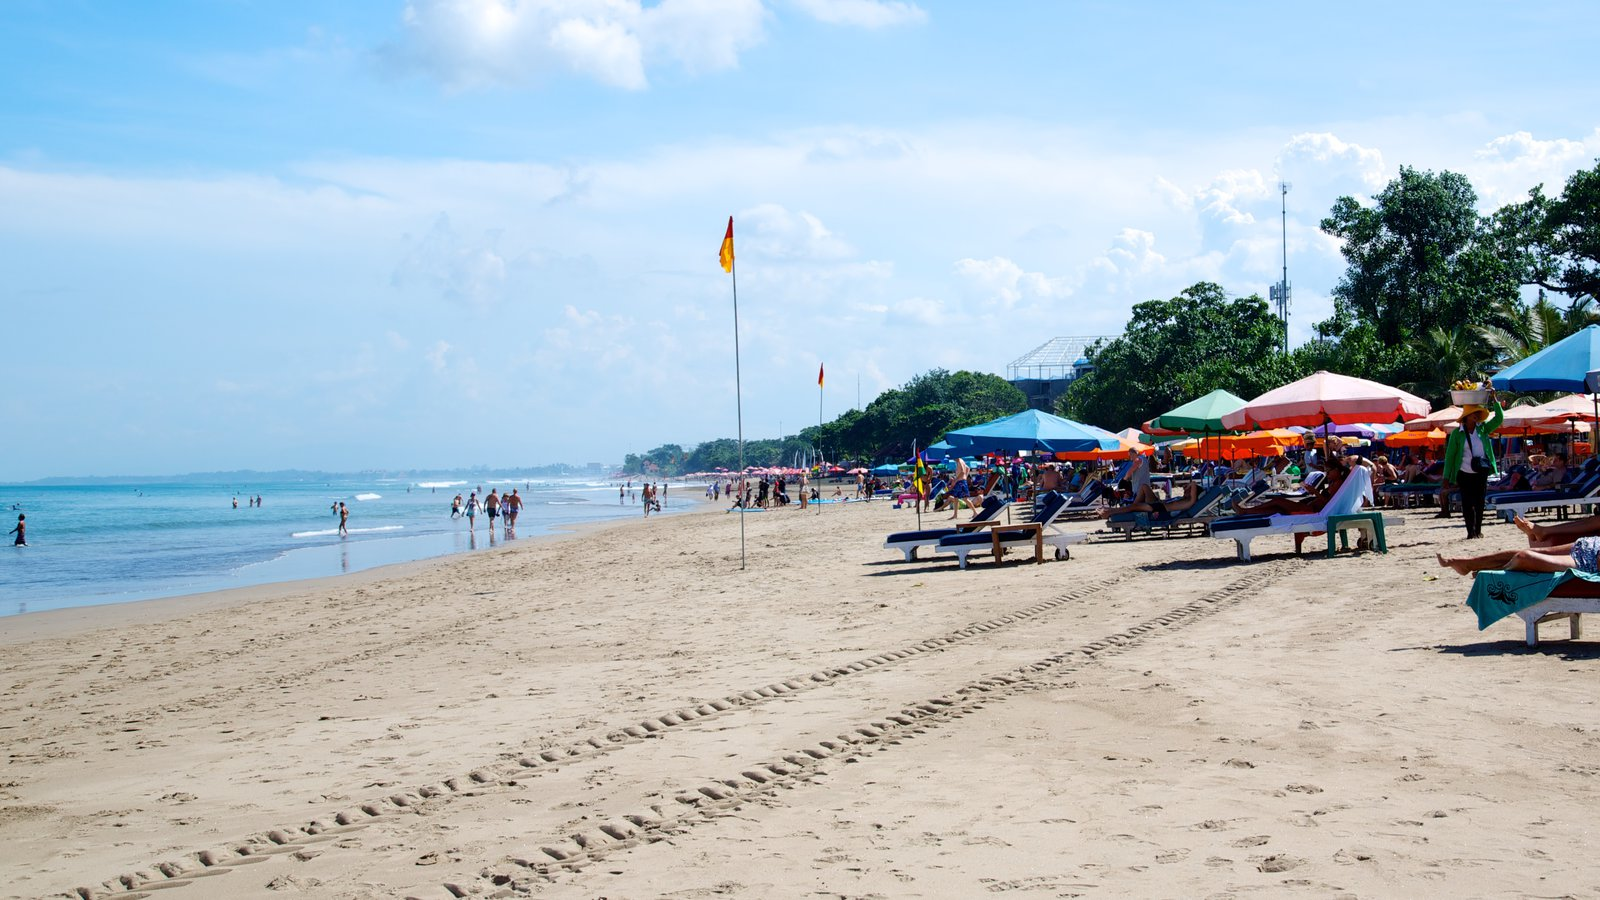 Nature Pictures View Images Double Beach Includes Sandy Pantai Kab